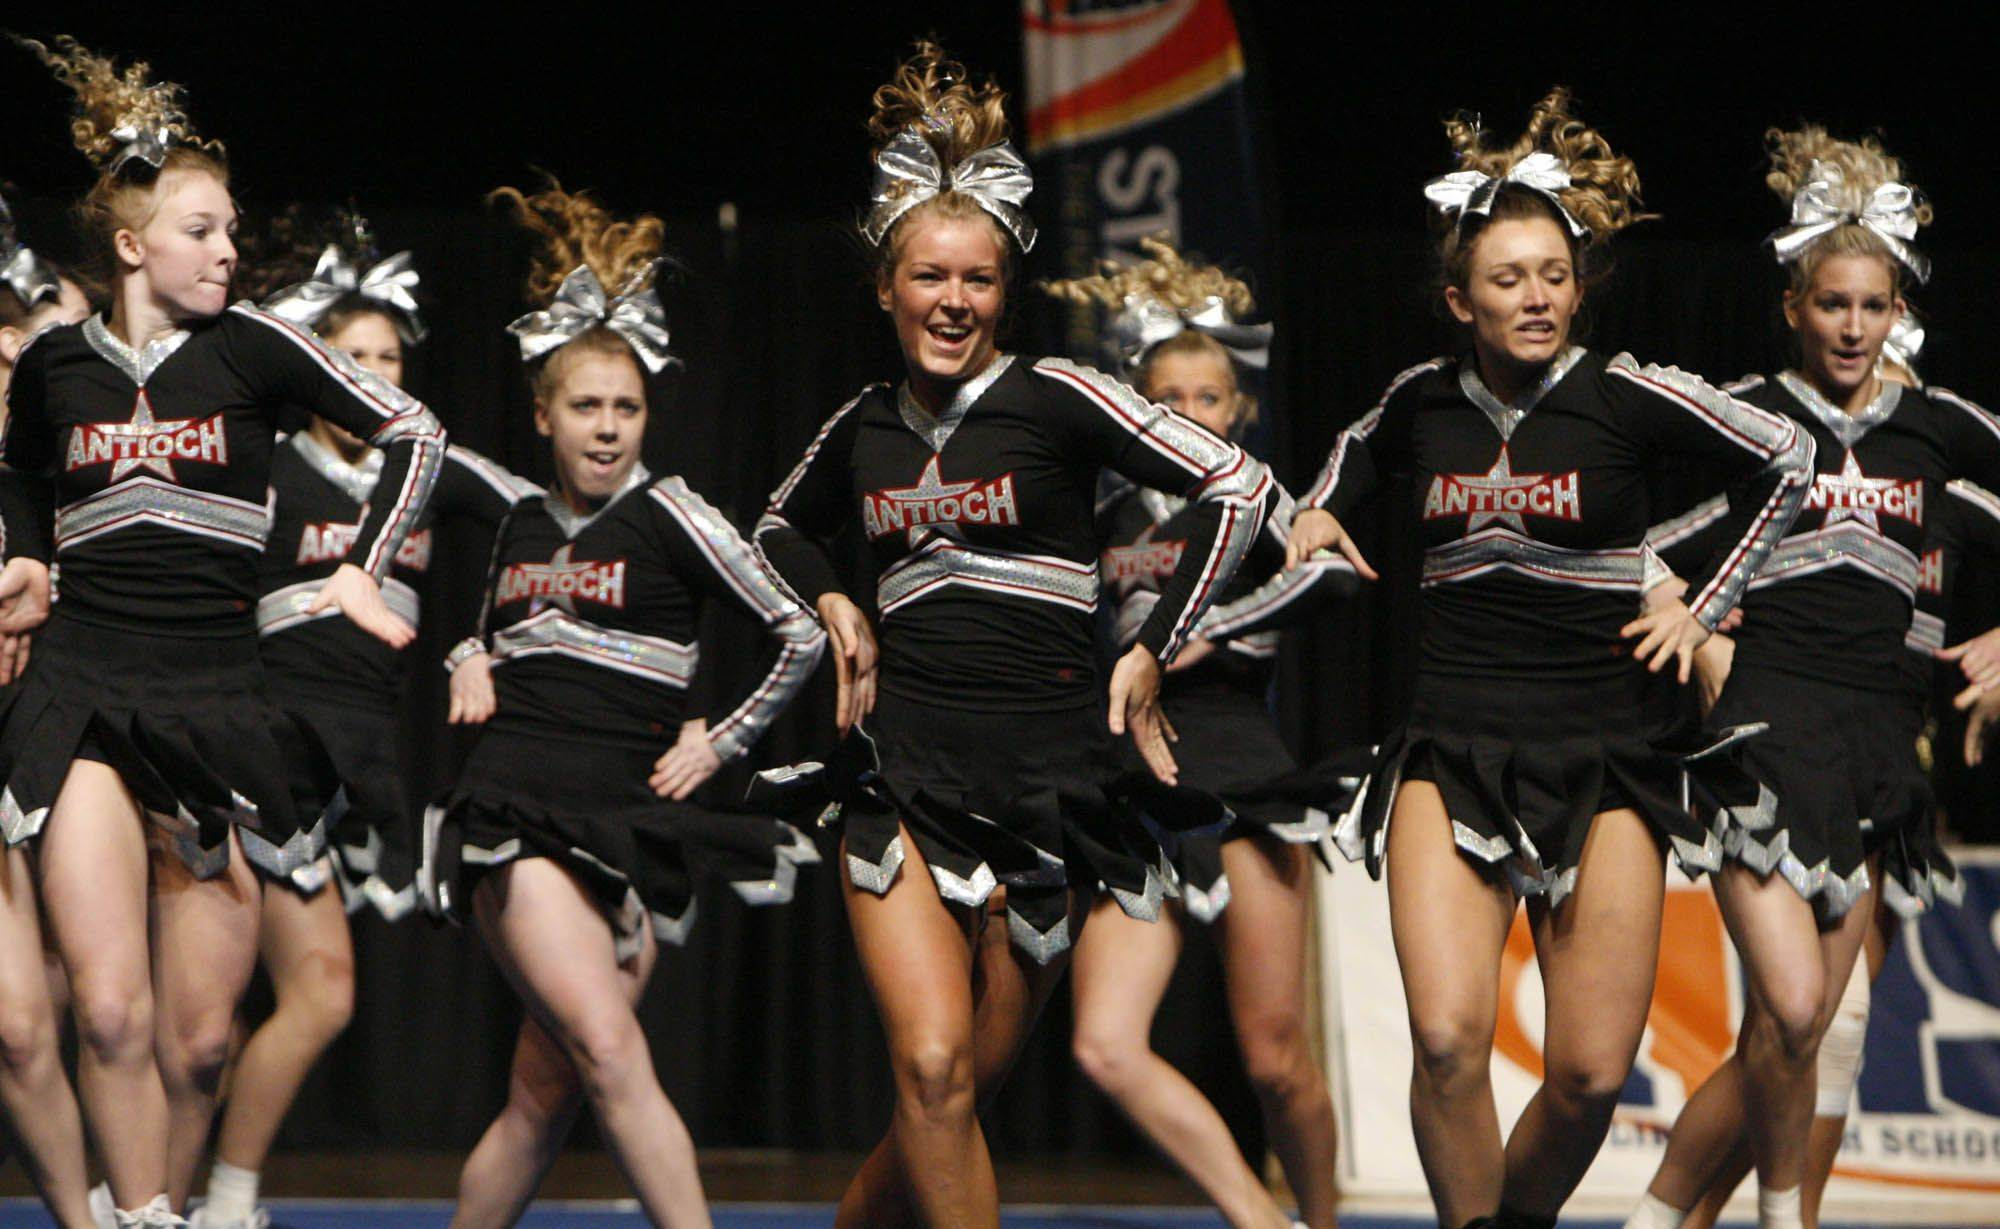 Antioch competes in the medium team category at IHSA cheerleading state finals at U.S. Cellular Coliseum in Bloomington on Saturday, February 4th.